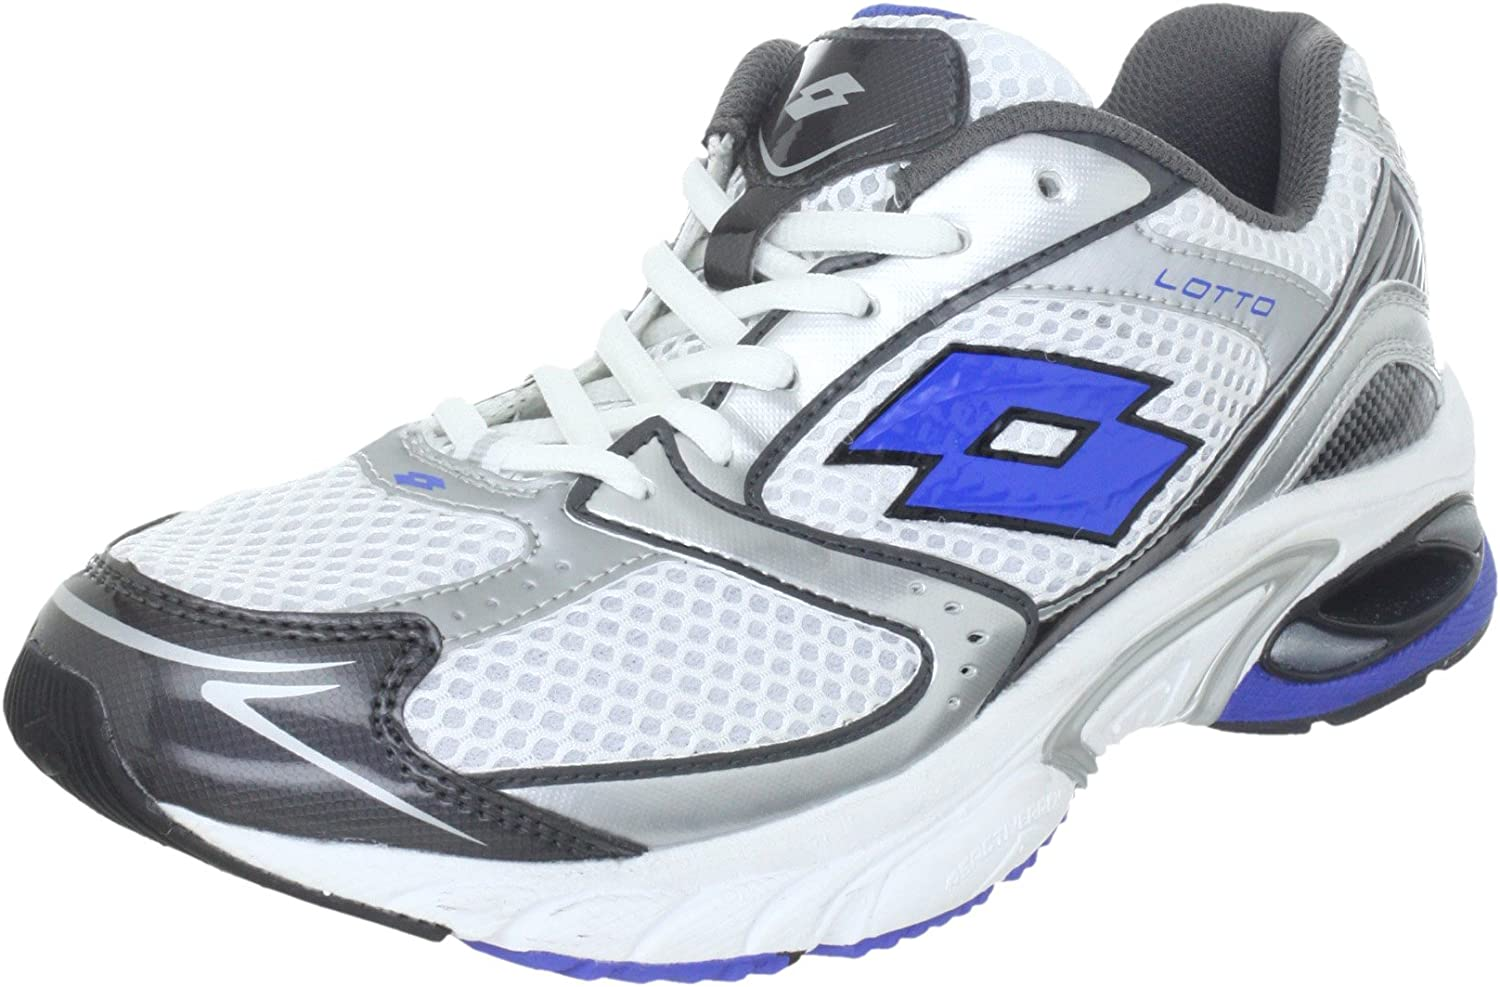 Lotto Sport REARCH Gemini Running shoes Mens